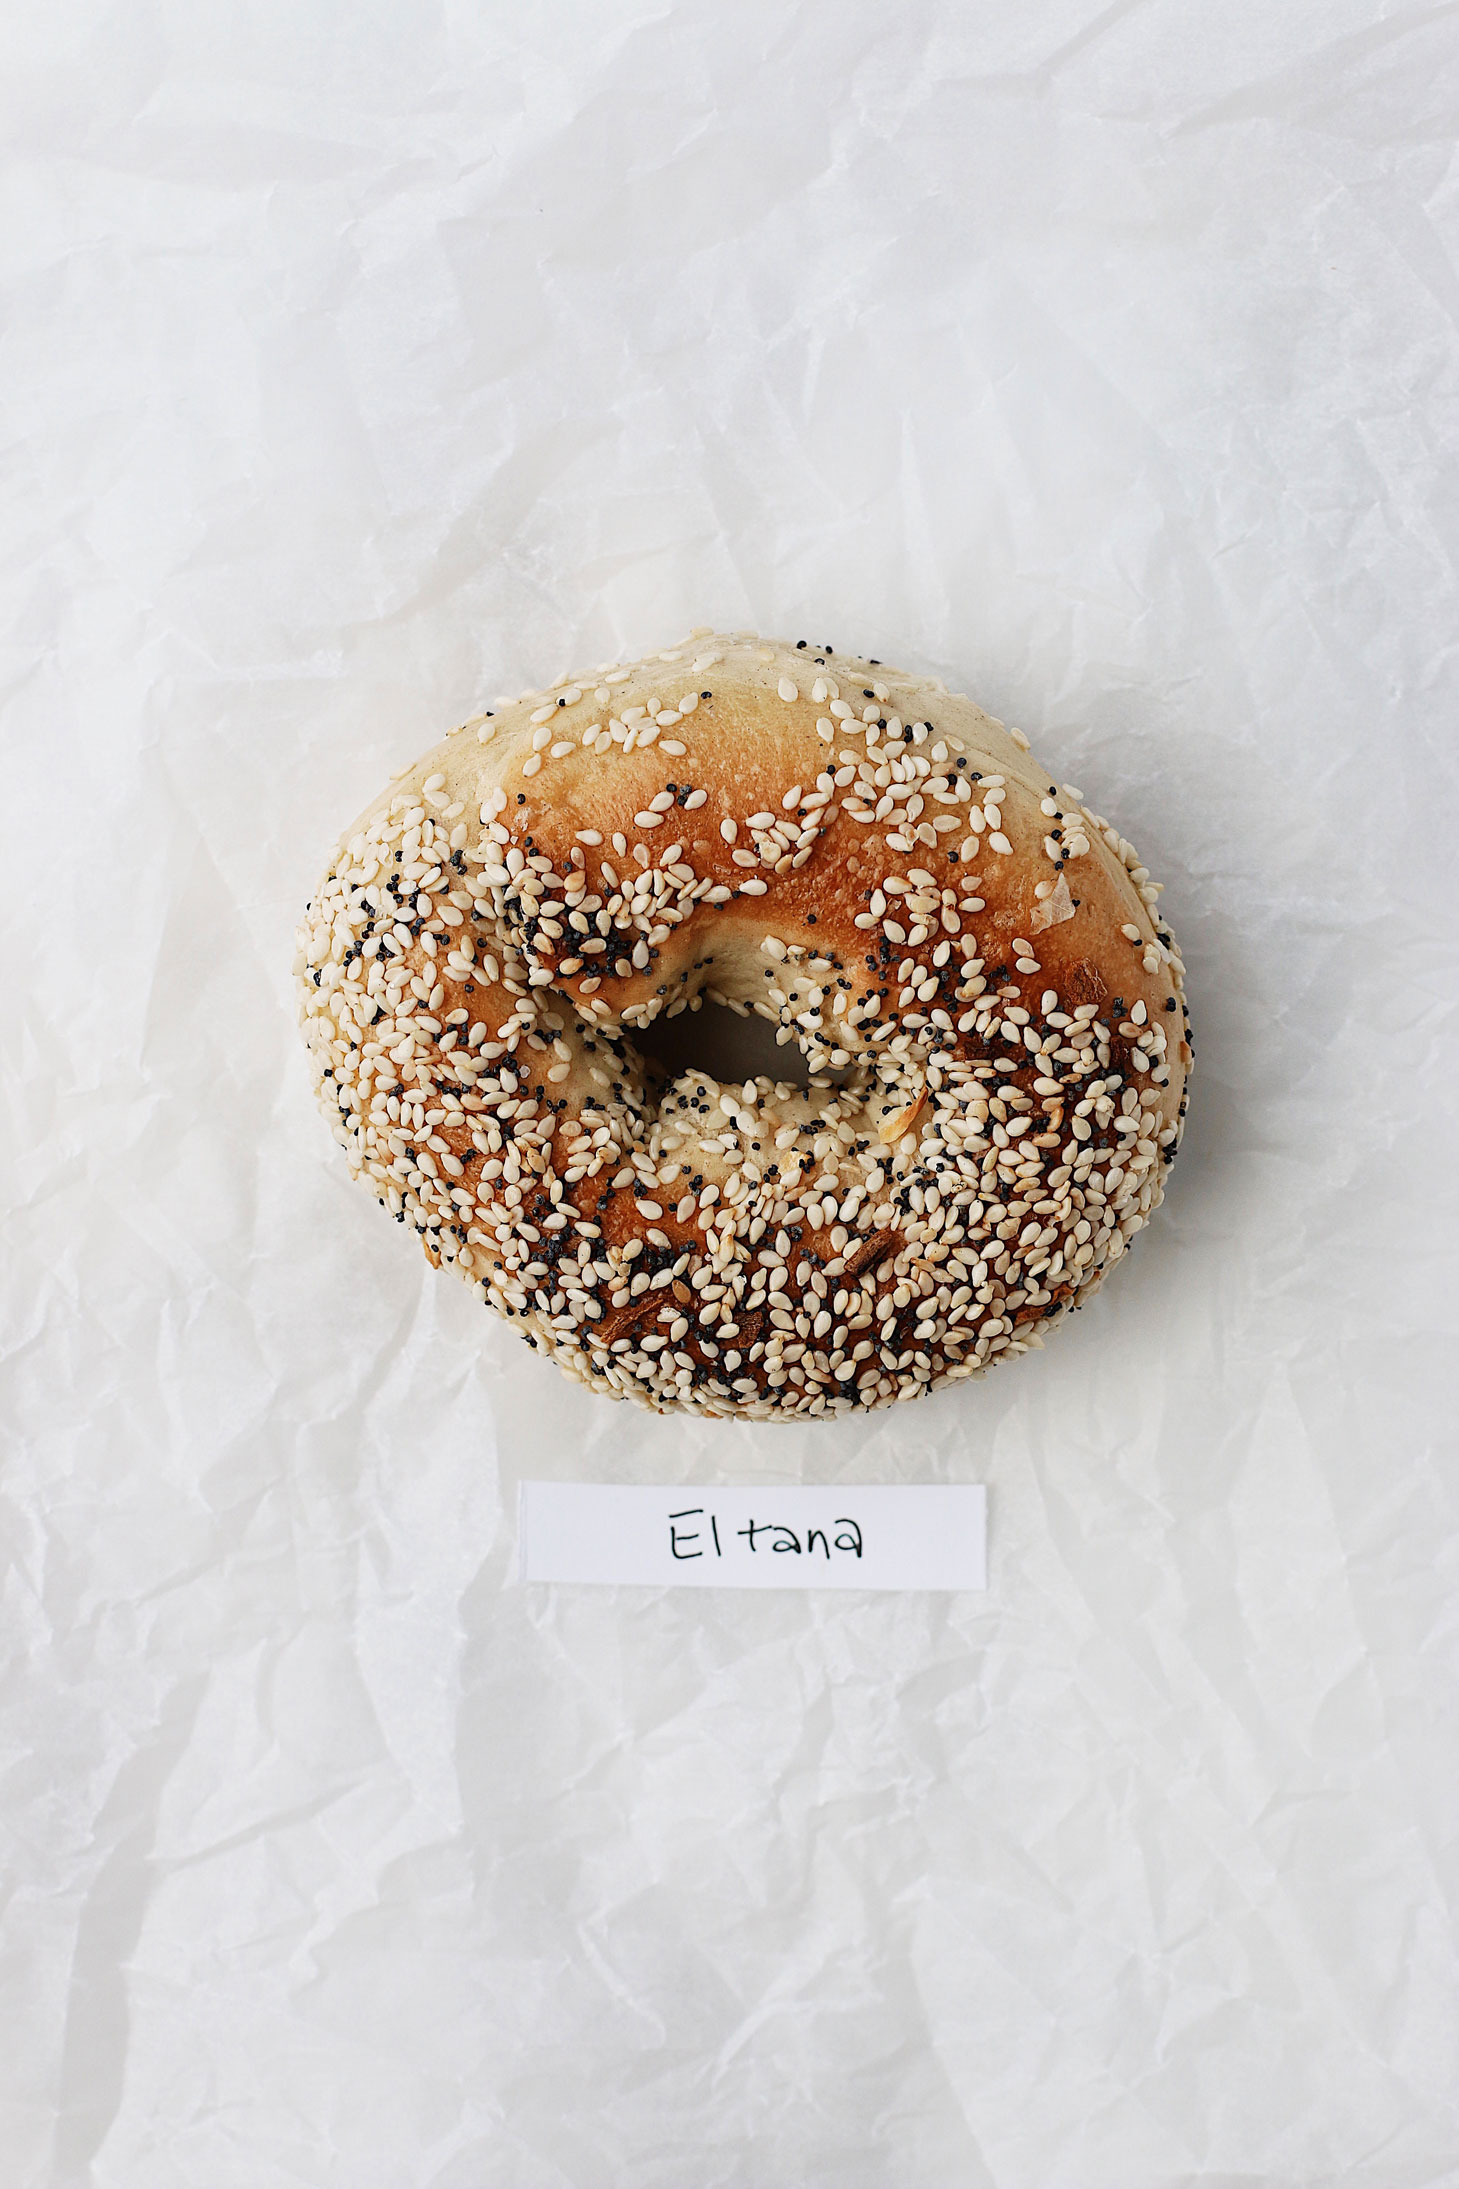 best-bagel-in-seattle-great-bagel-off-eltana-everything